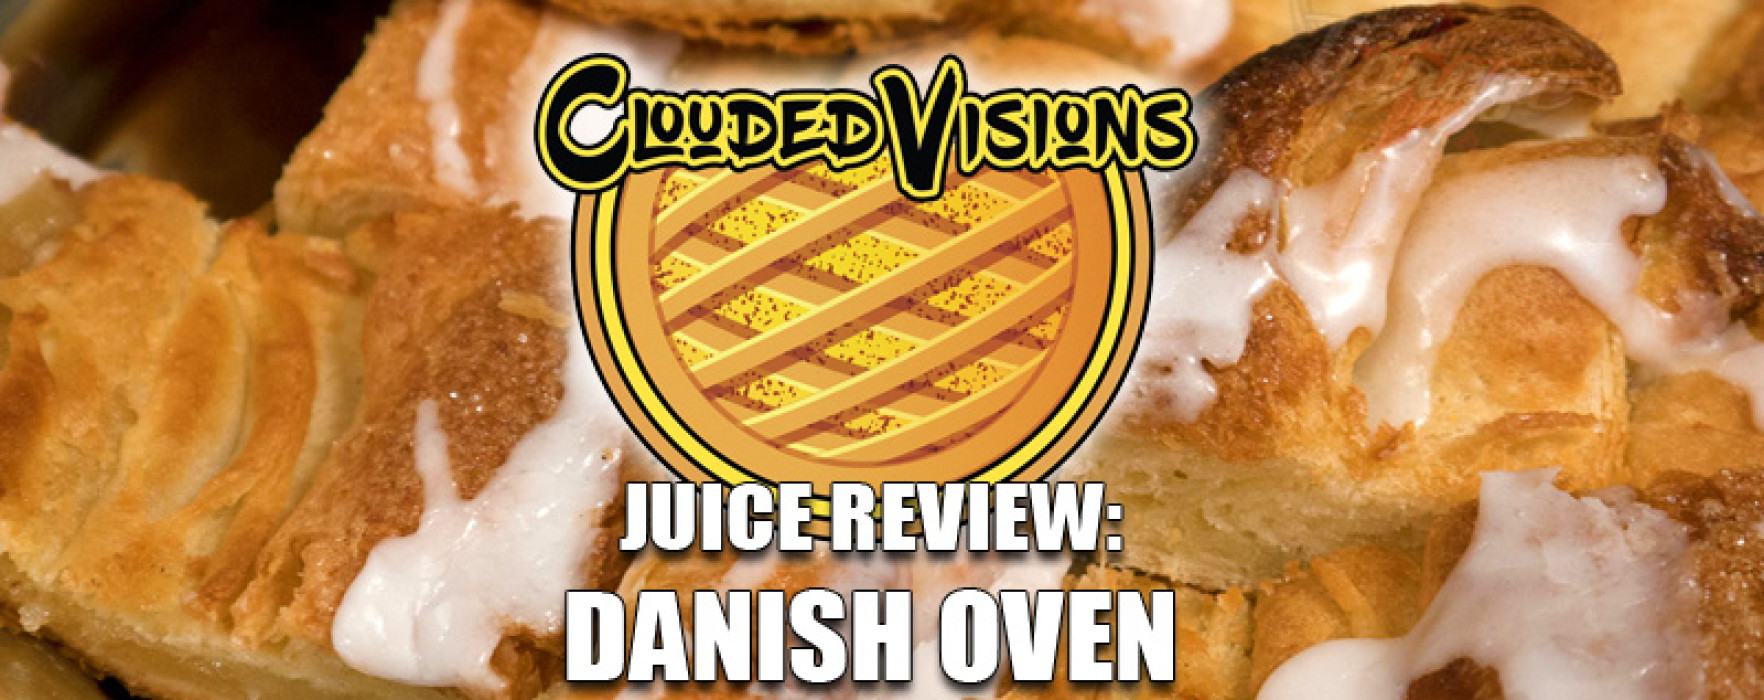 eJuice Review: Danish Oven by Clouded Visions